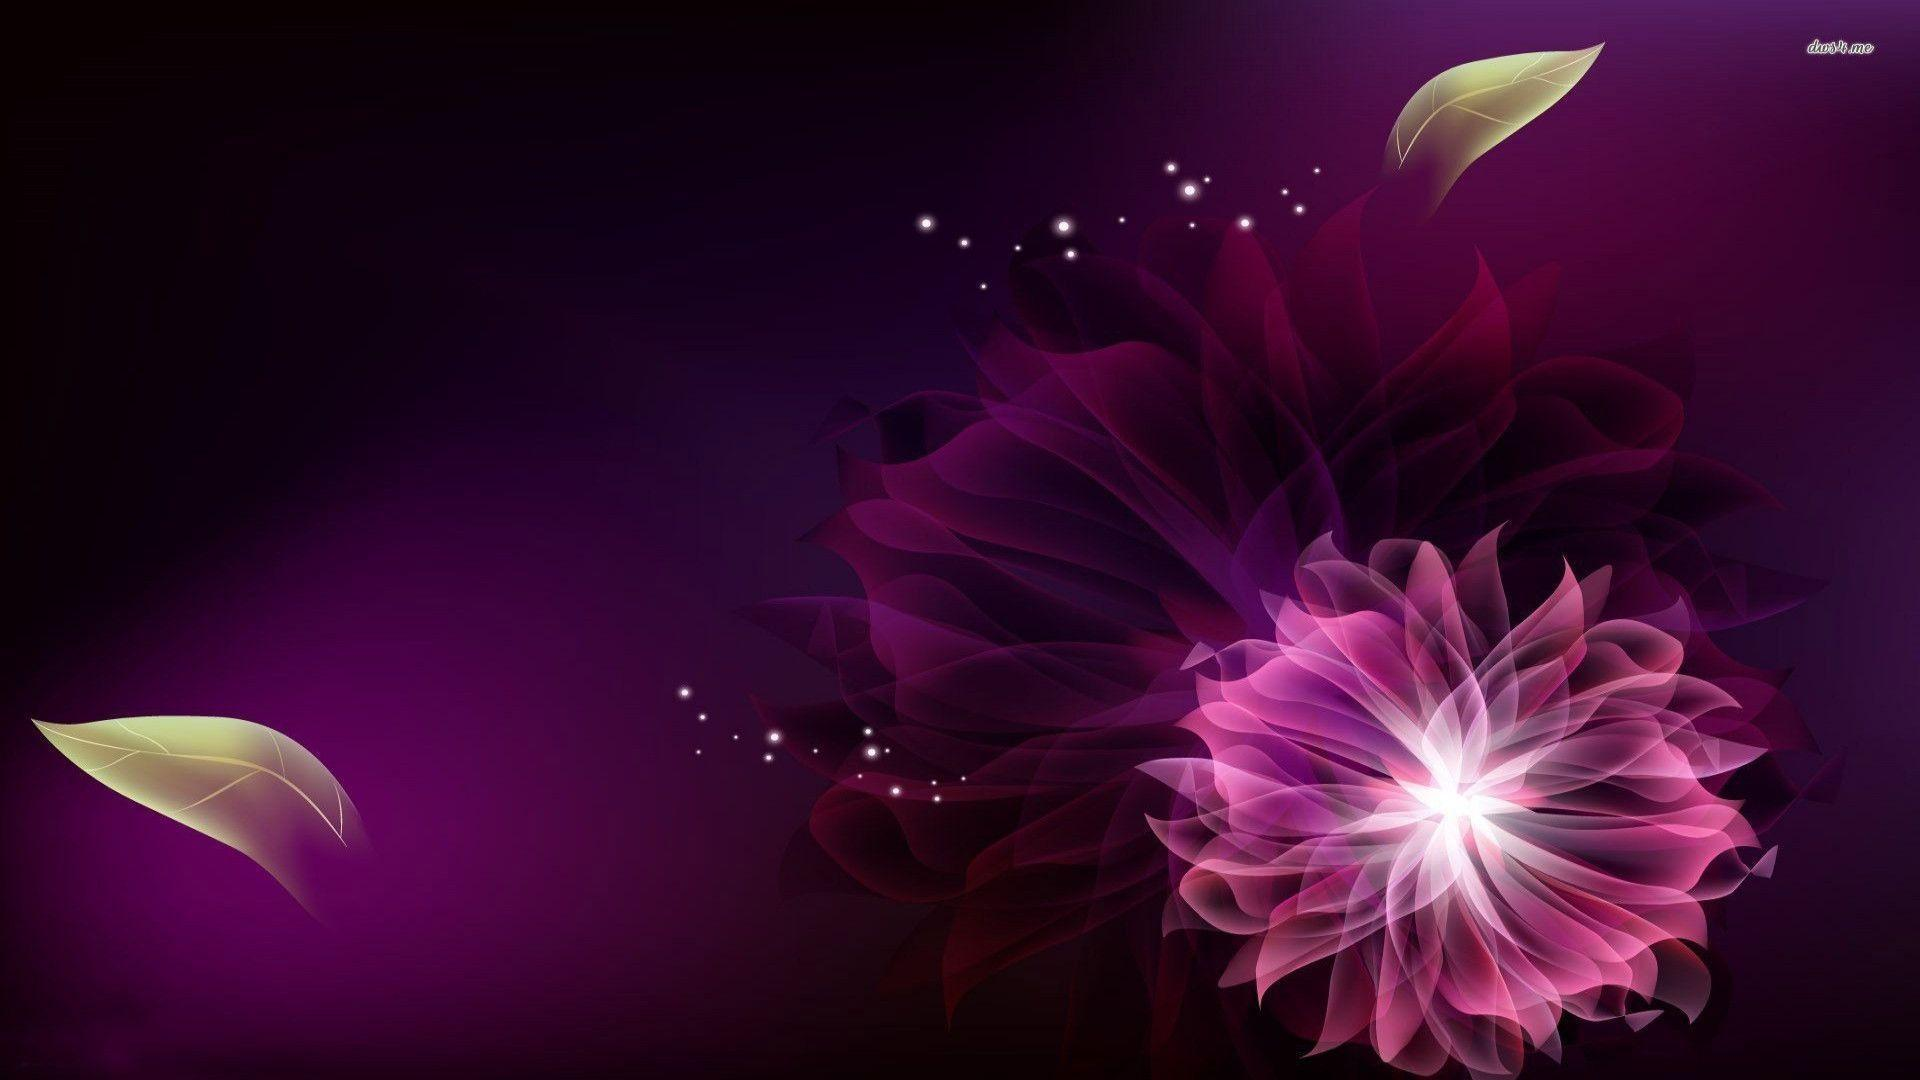 Dark Purple Flowers Background Hd Images 3 HD Wallpapers